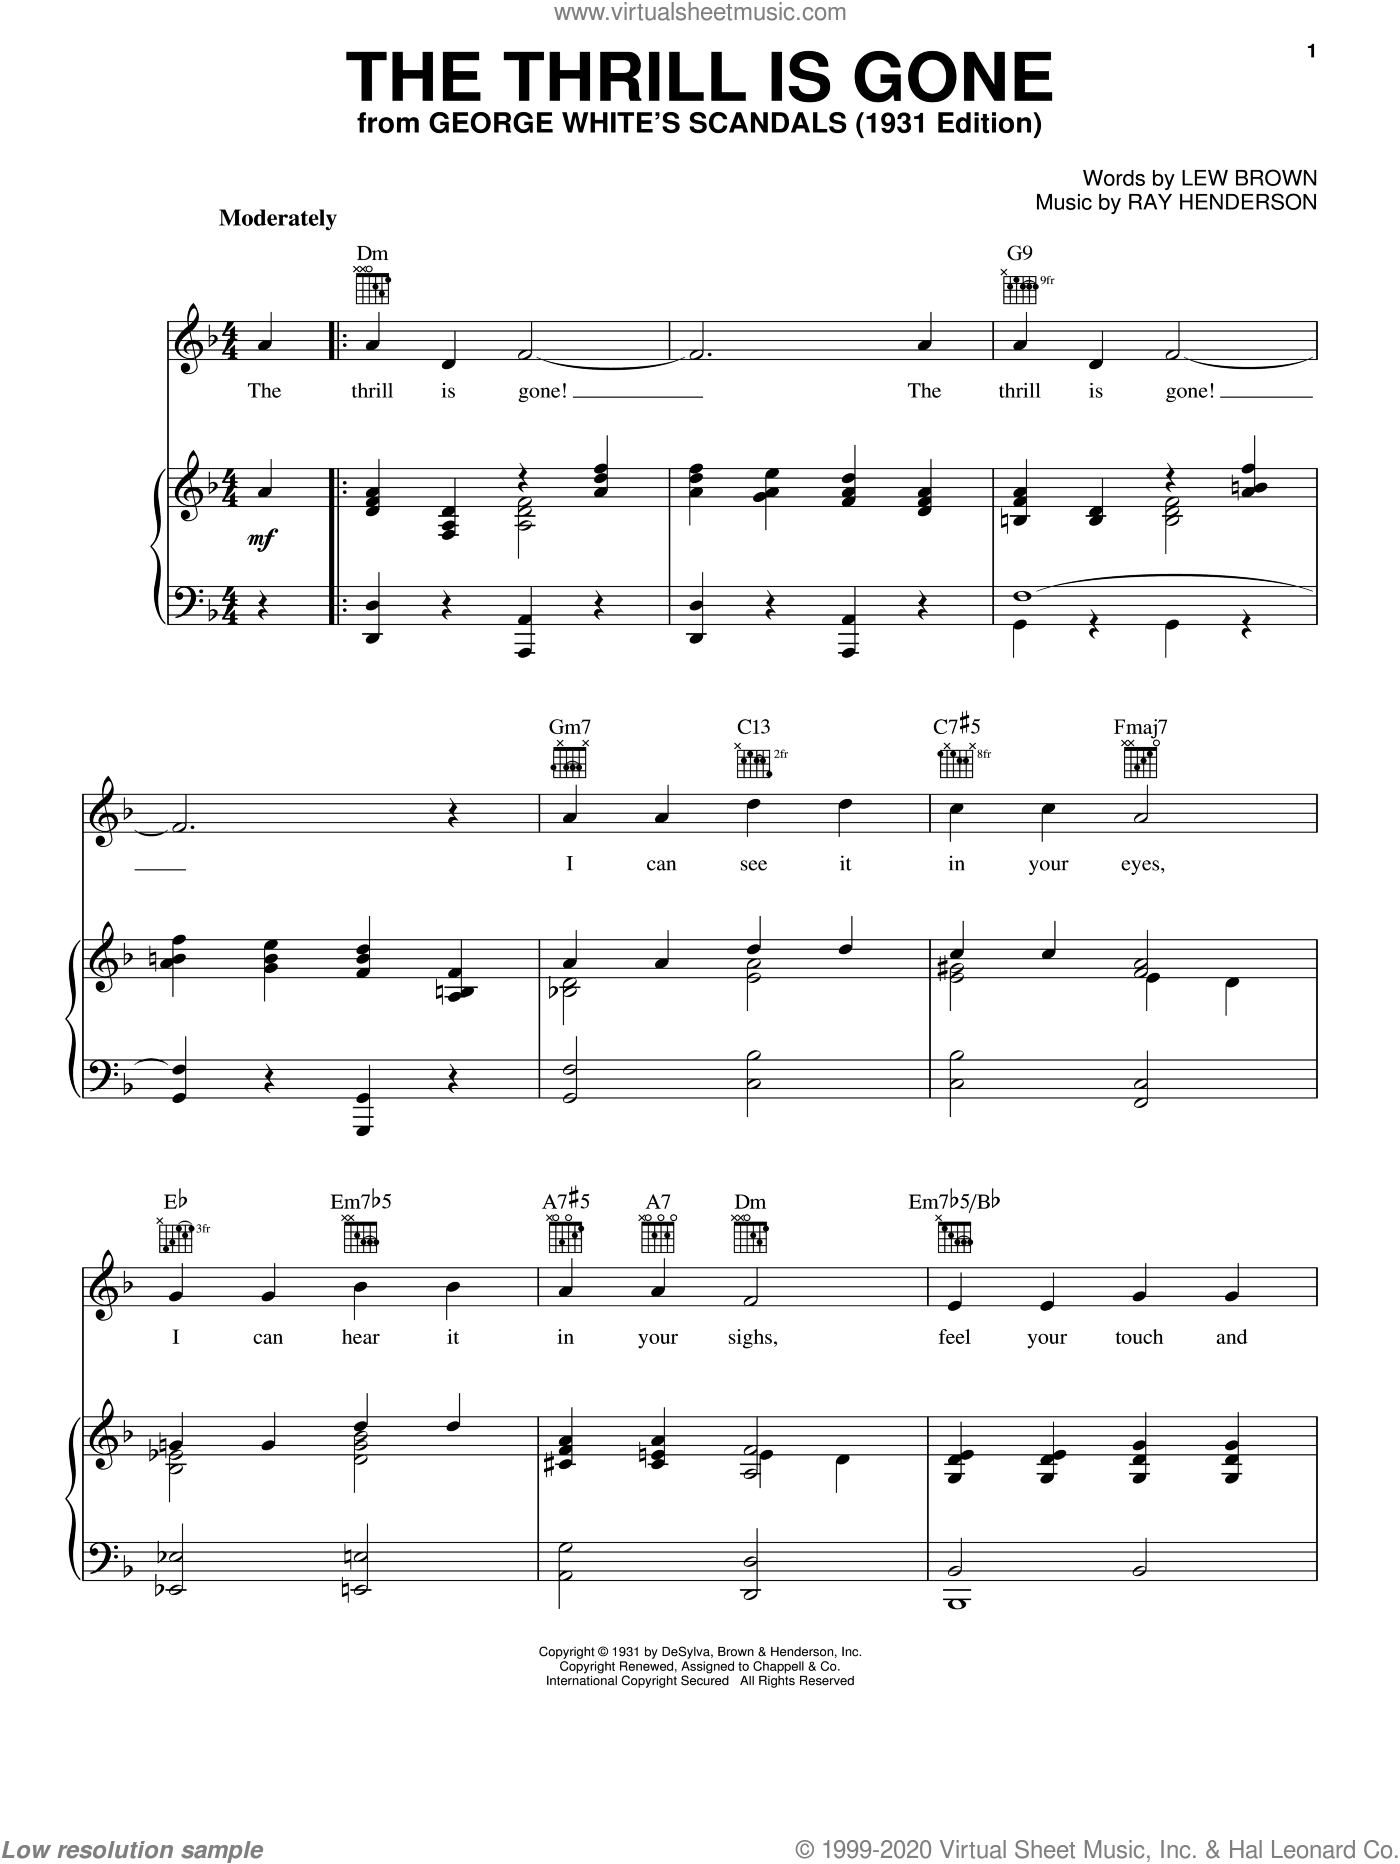 The Thrill Is Gone sheet music for voice, piano or guitar by Lew Brown and Ray Henderson, intermediate skill level